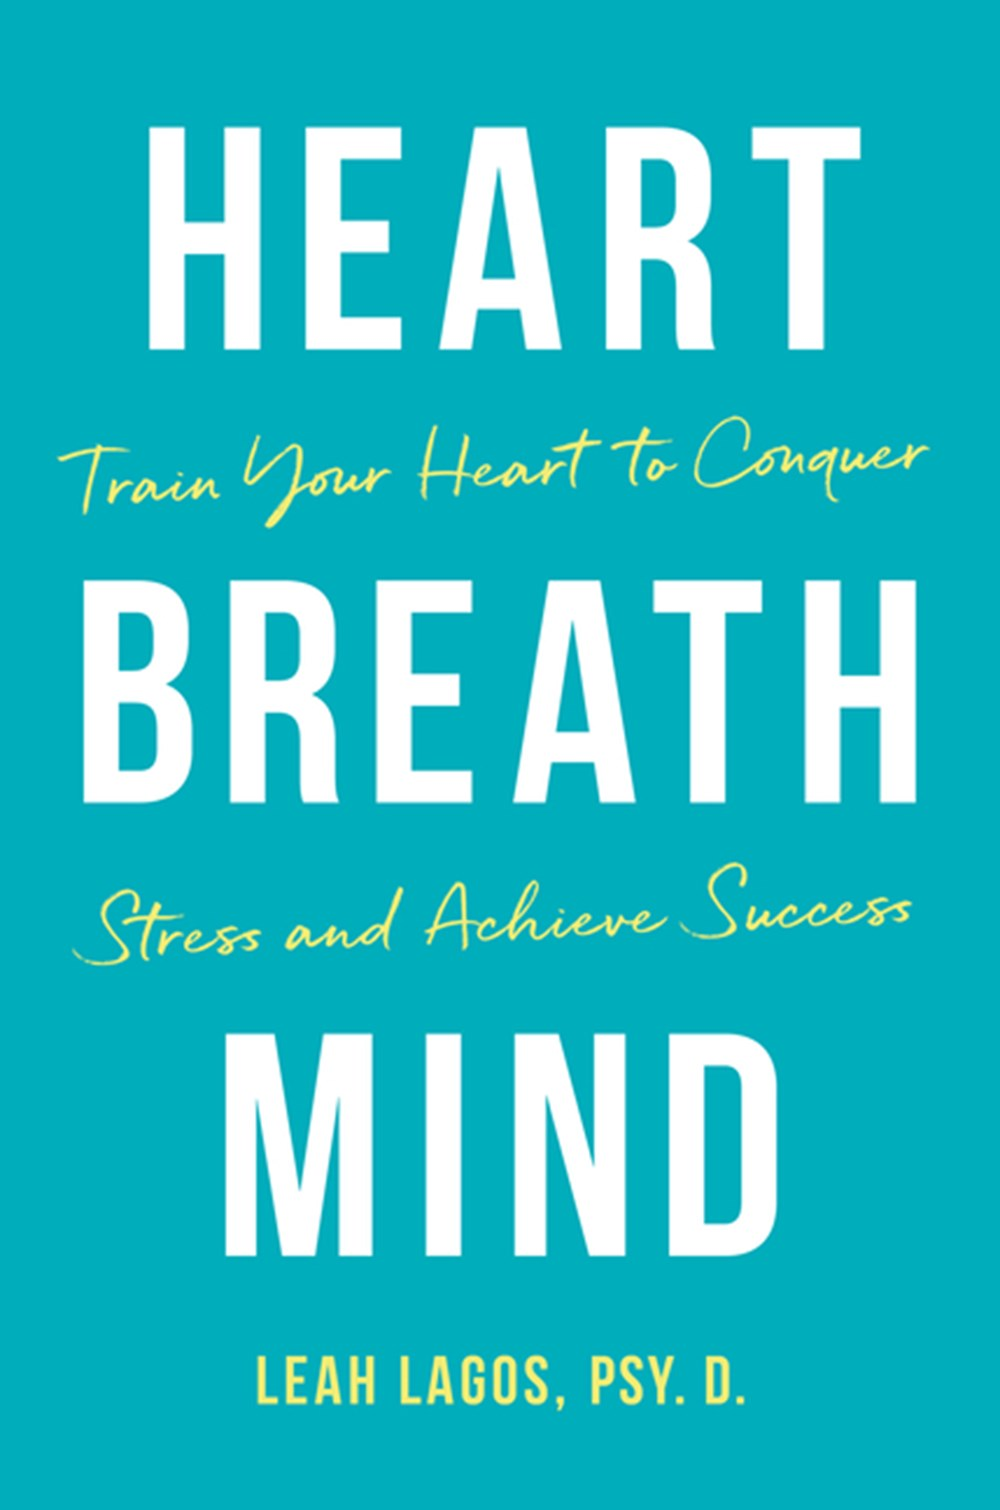 Heart Breath Mind Train Your Heart to Conquer Stress and Achieve Success